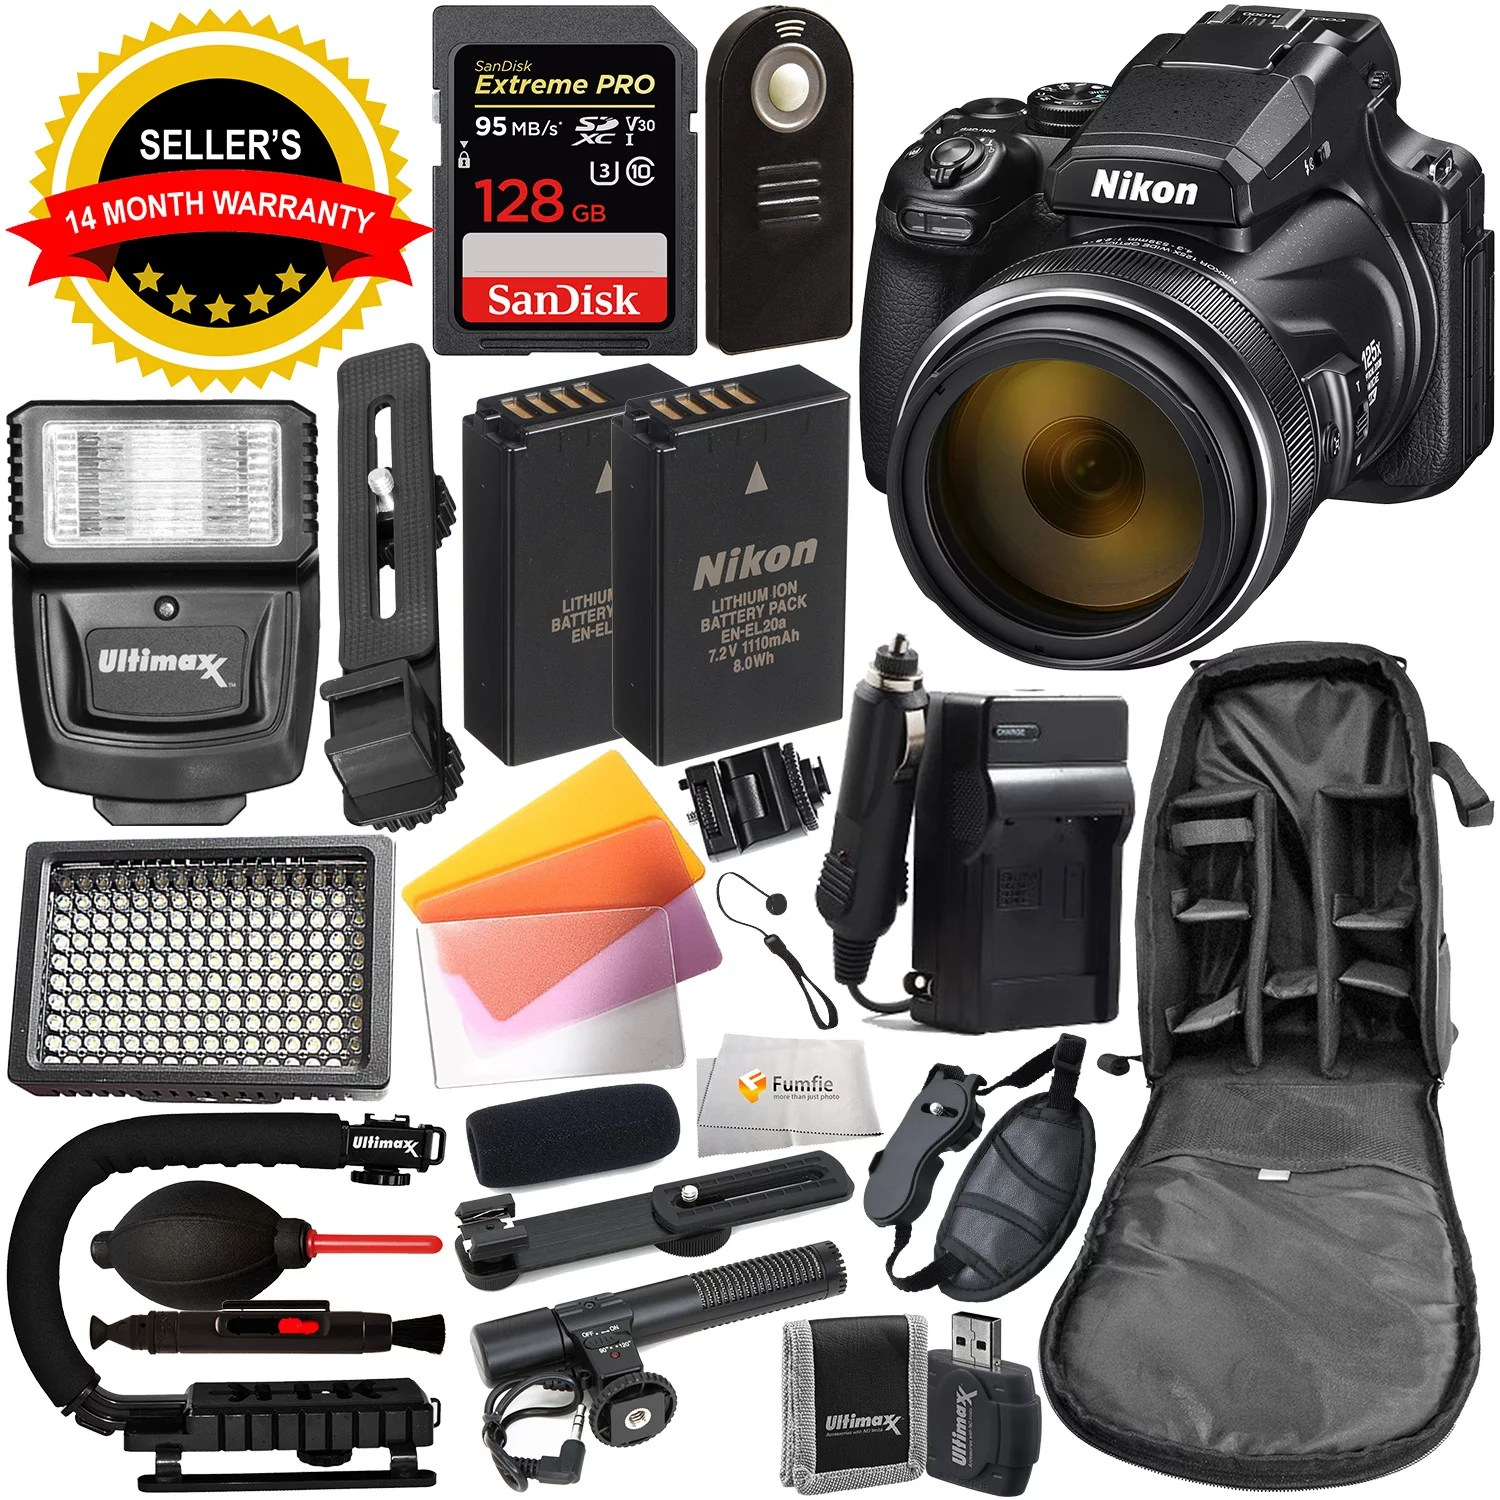 Nikon COOLPIX P1000 Digital Camera with Deluxe Accessory Bundle – Includes: SanDisk Extreme PRO 128GB SDXC UHS-I Memory Card, Extra Battery, Digital Slave Flash & MUCH MORE